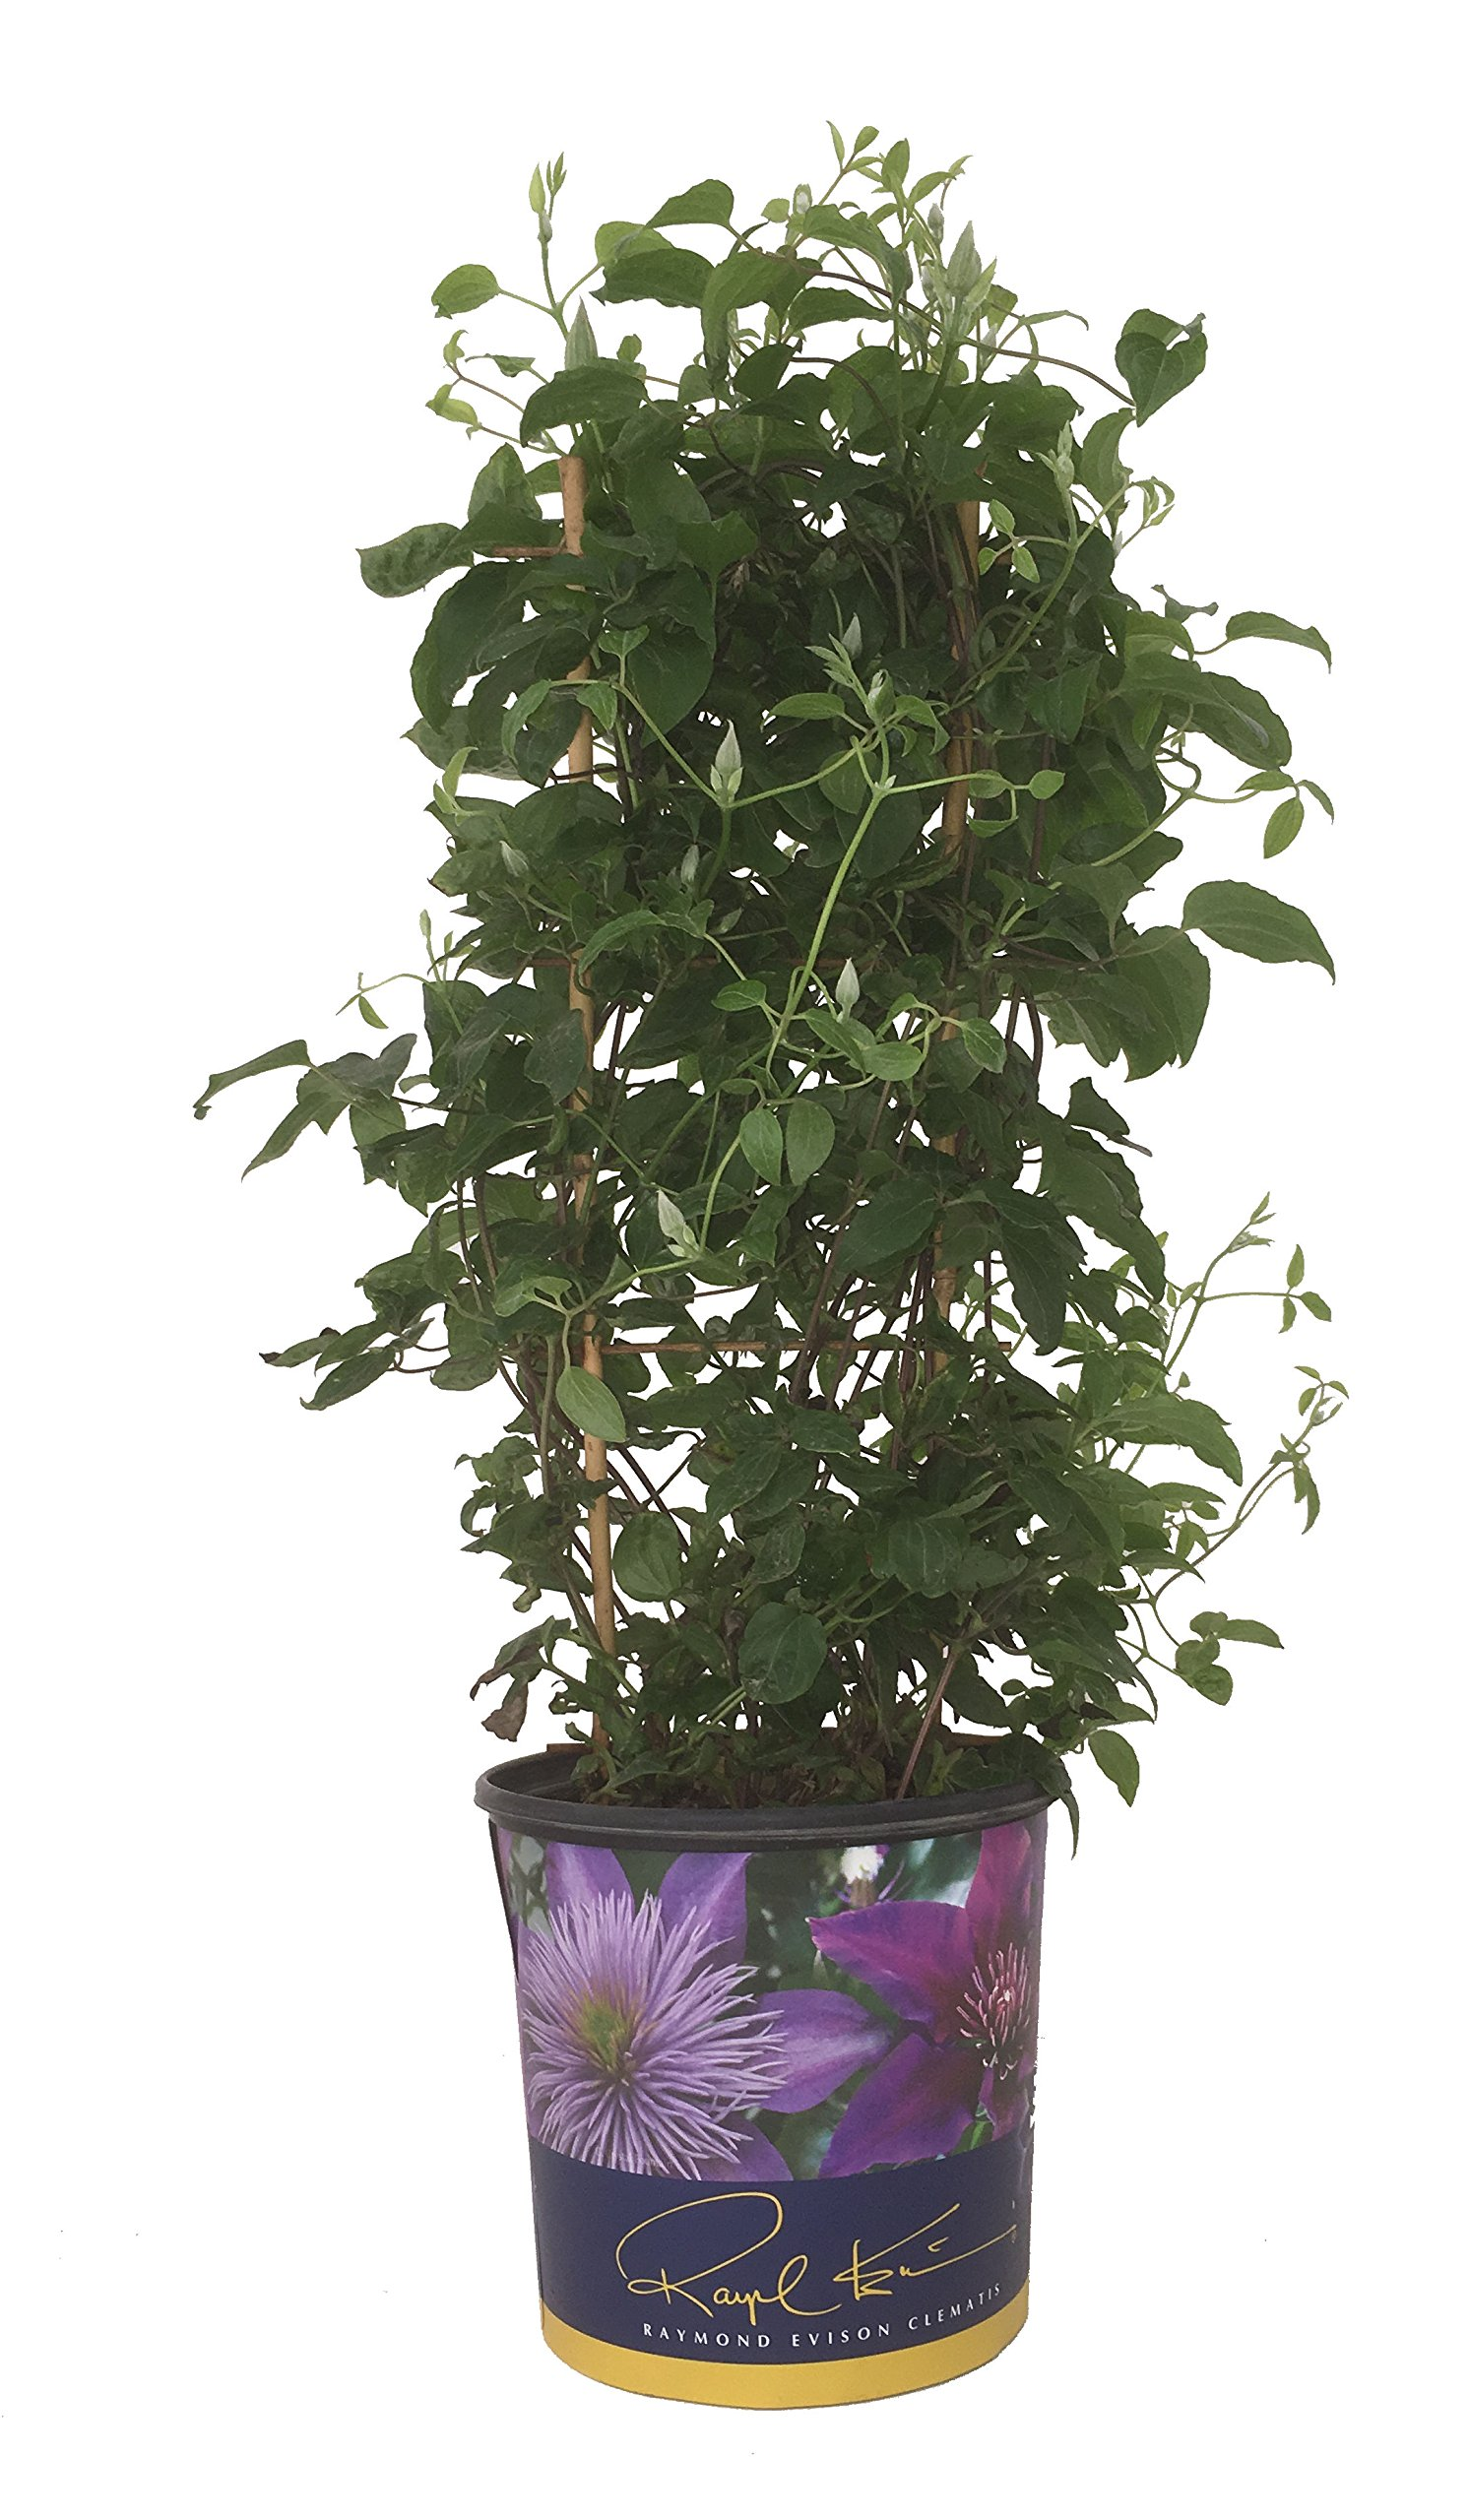 Raymond Evison 20596 Sacha Clematis, 1 gallon, Light Purple